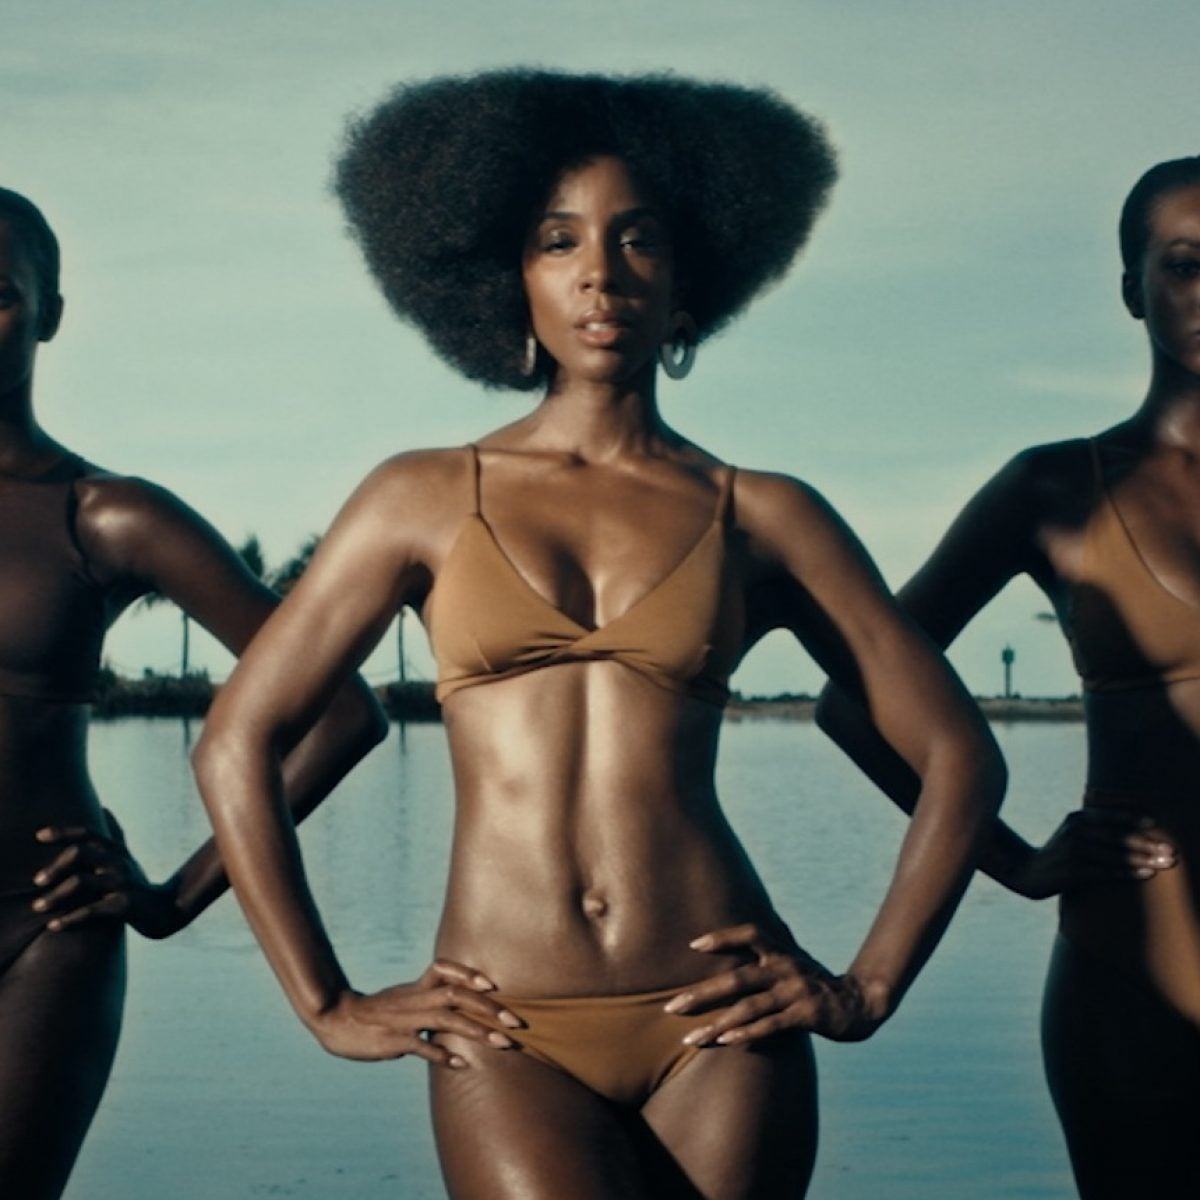 EXCLUSIVE: Kelly Rowland Serves Steamy Hot 'Coffee' In New Video